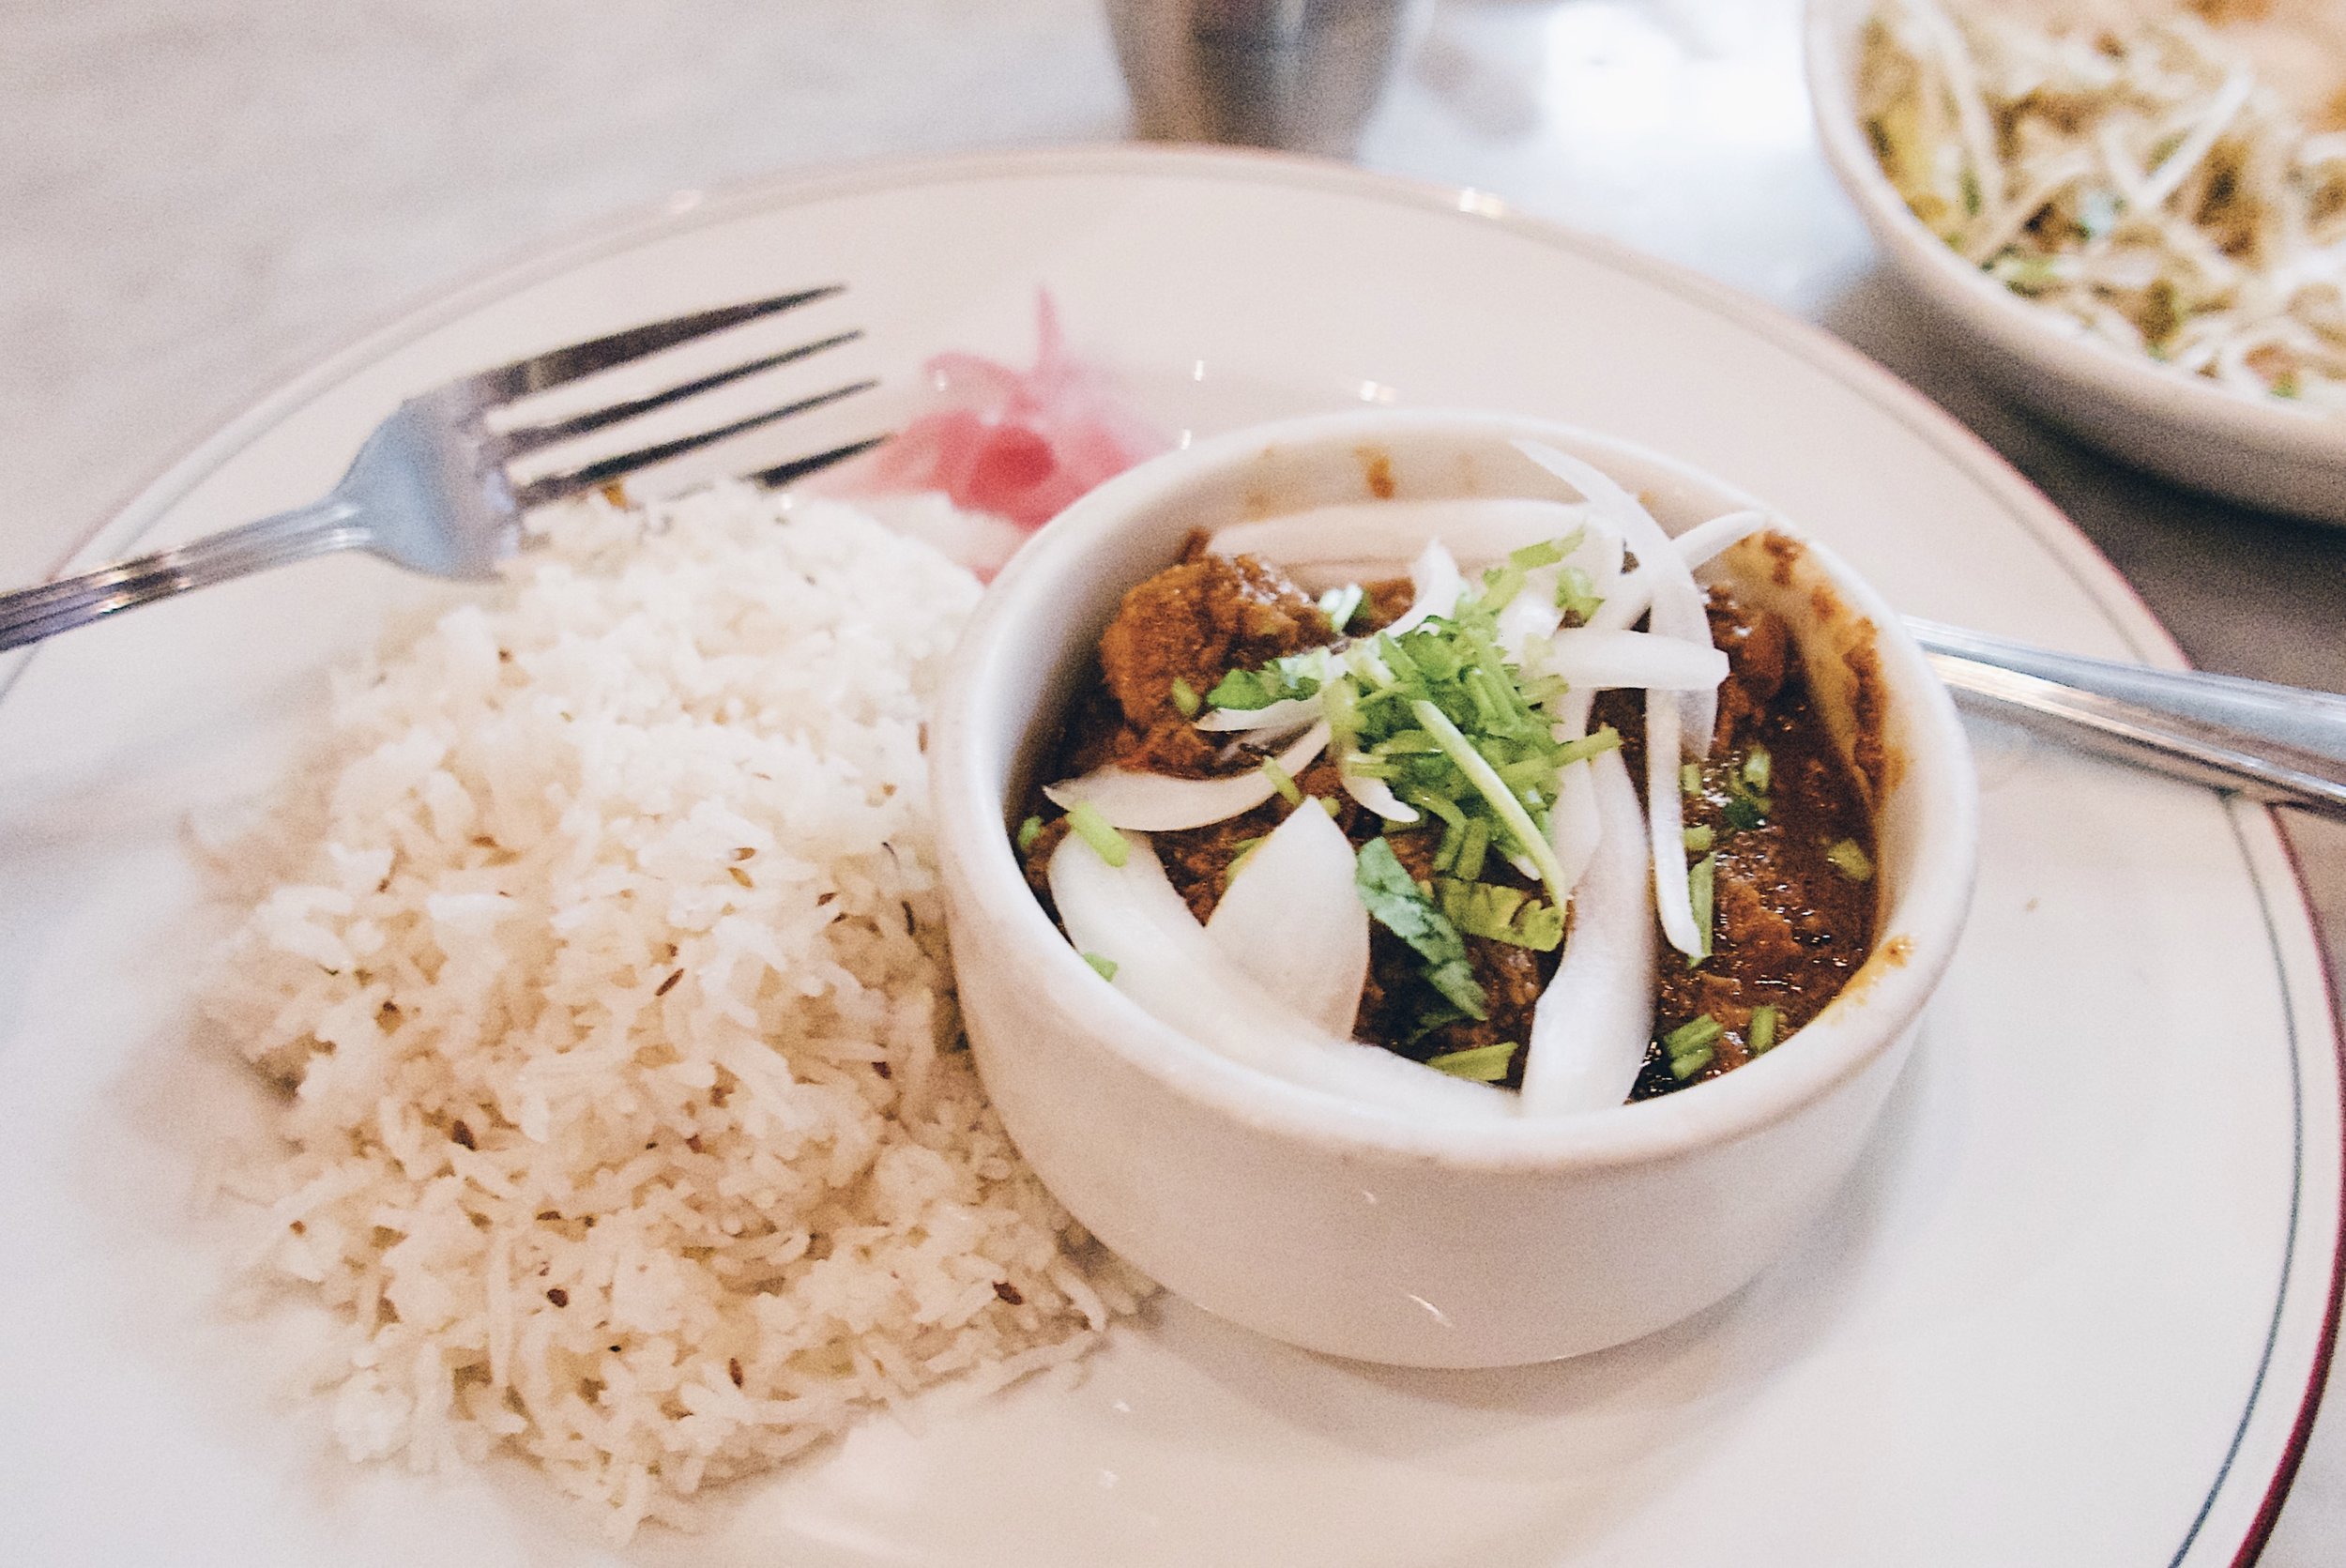 Goan Pork Curry - There were four main courses to choose from, but Brandon and I both wanted the Goan pork curry. When a menu item is described as